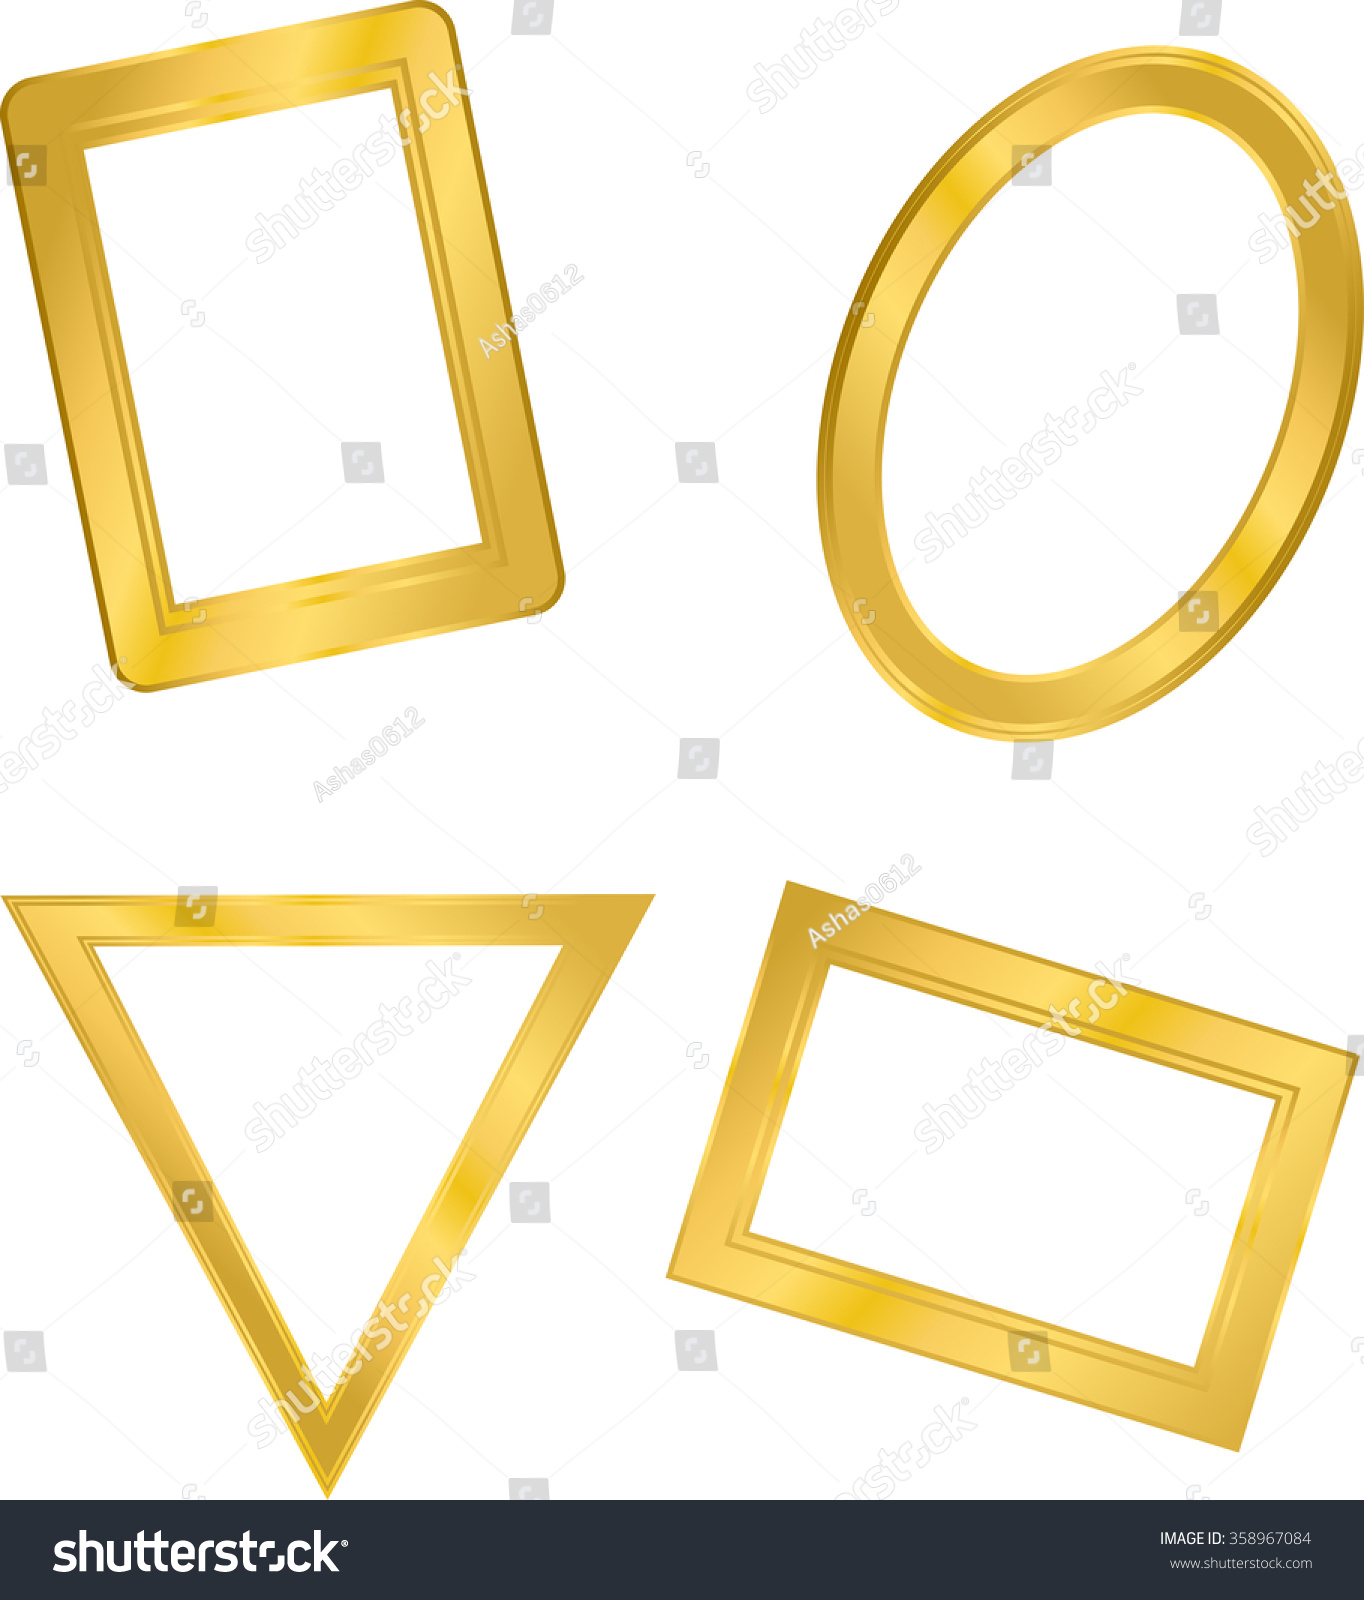 frame in the shape of a triangle rectangle circle metal gold four